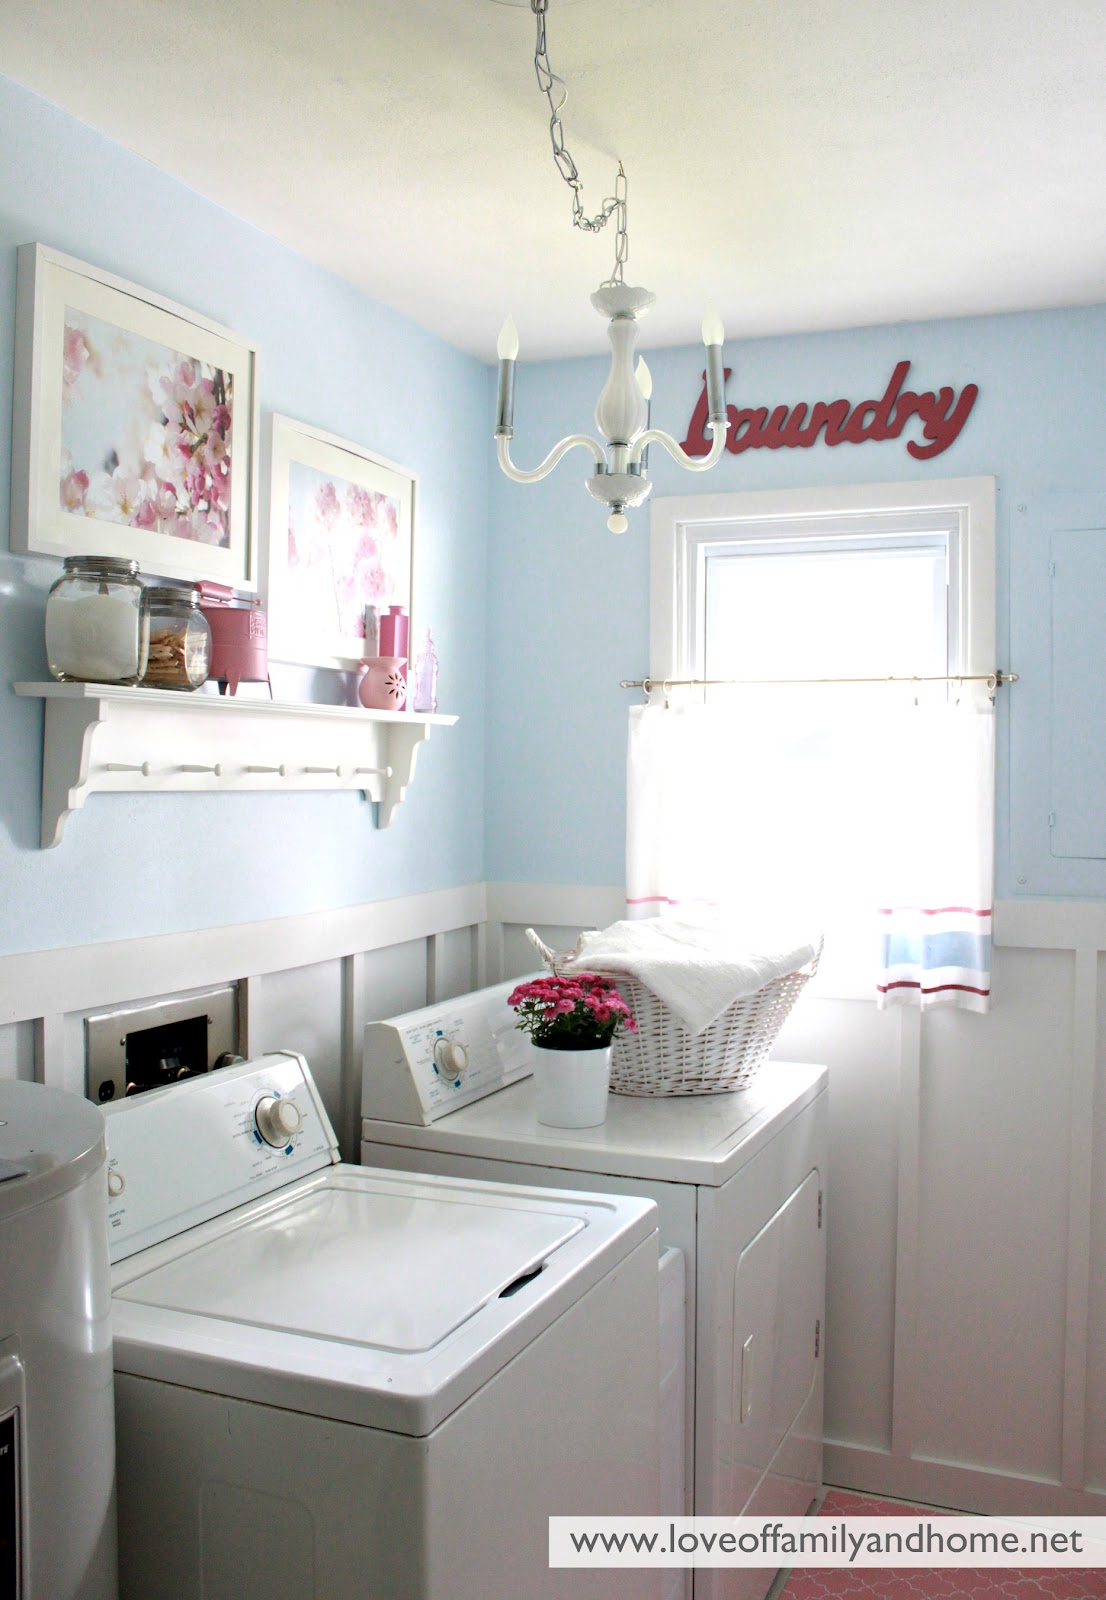 Laundry Room Home: Laundry Room Reveal {Take 2}